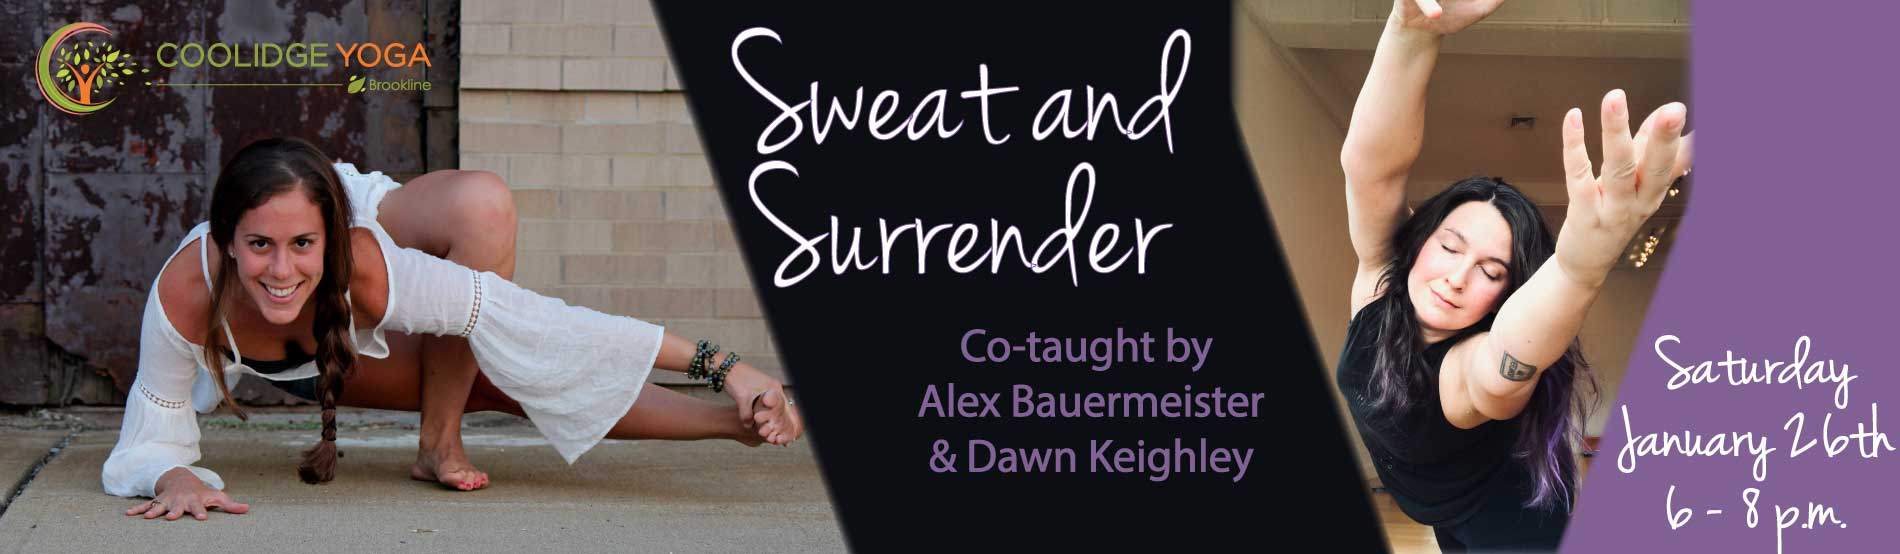 Sweat and Surrender with Alex and Dawn at Coolidge Yoga Brookline